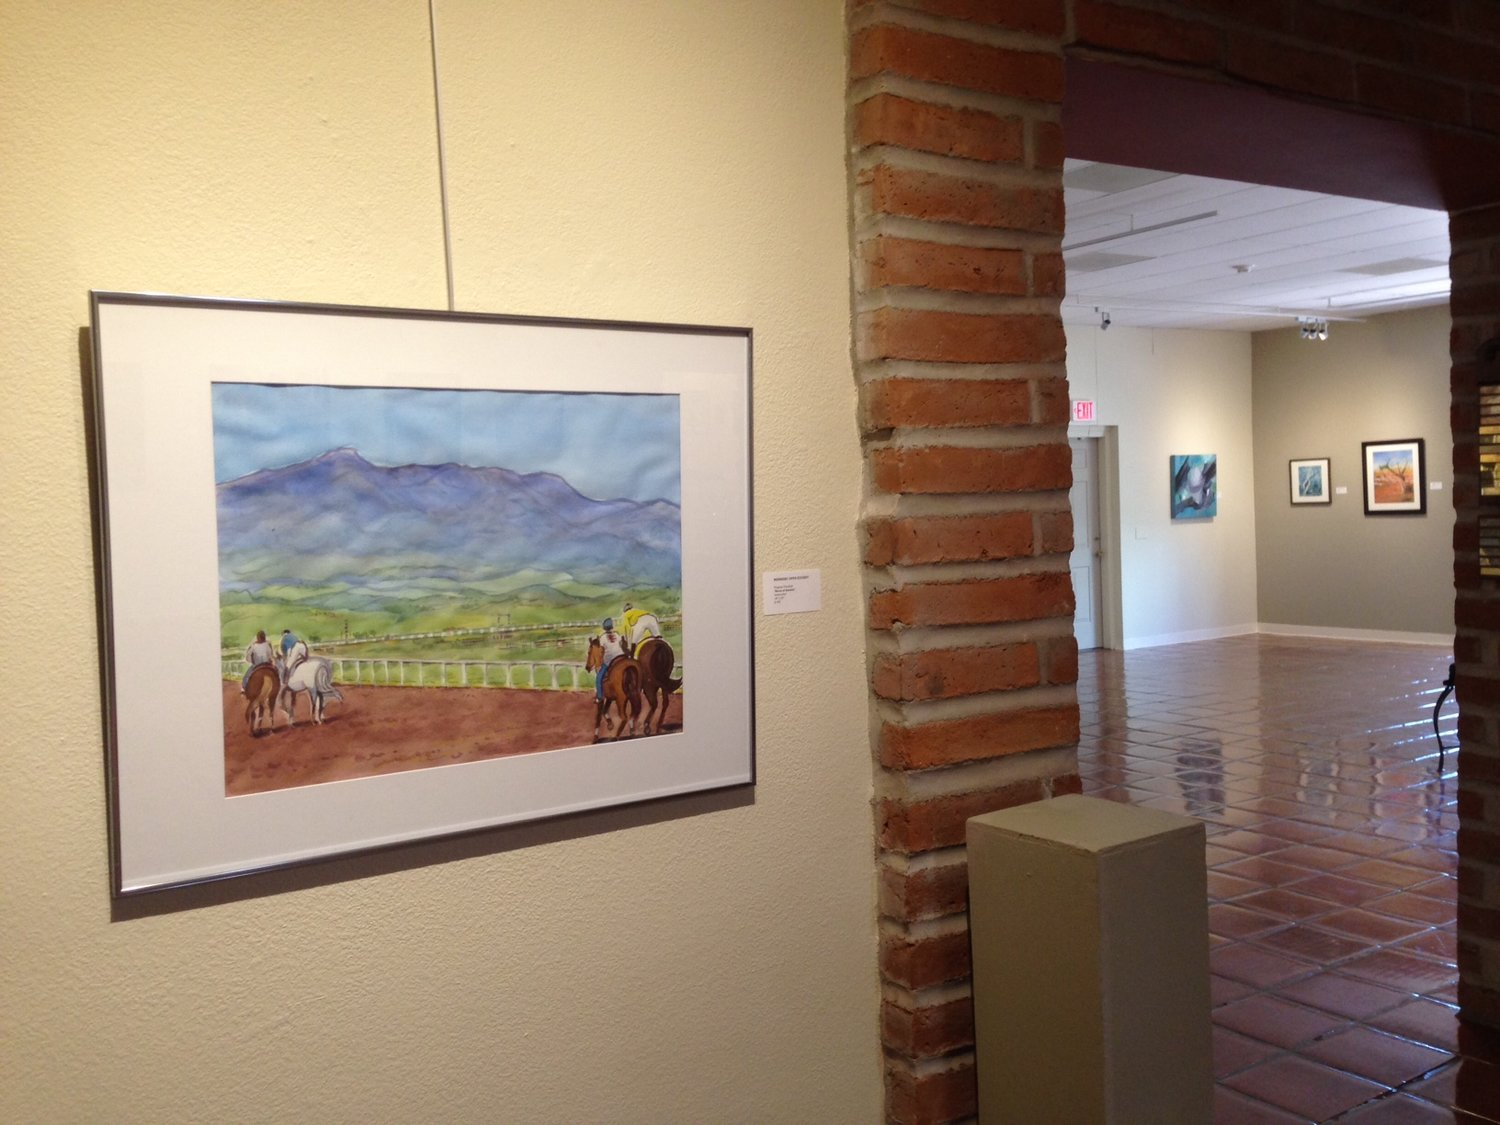 Watercolor art galleries in houston - Races At Sonoita